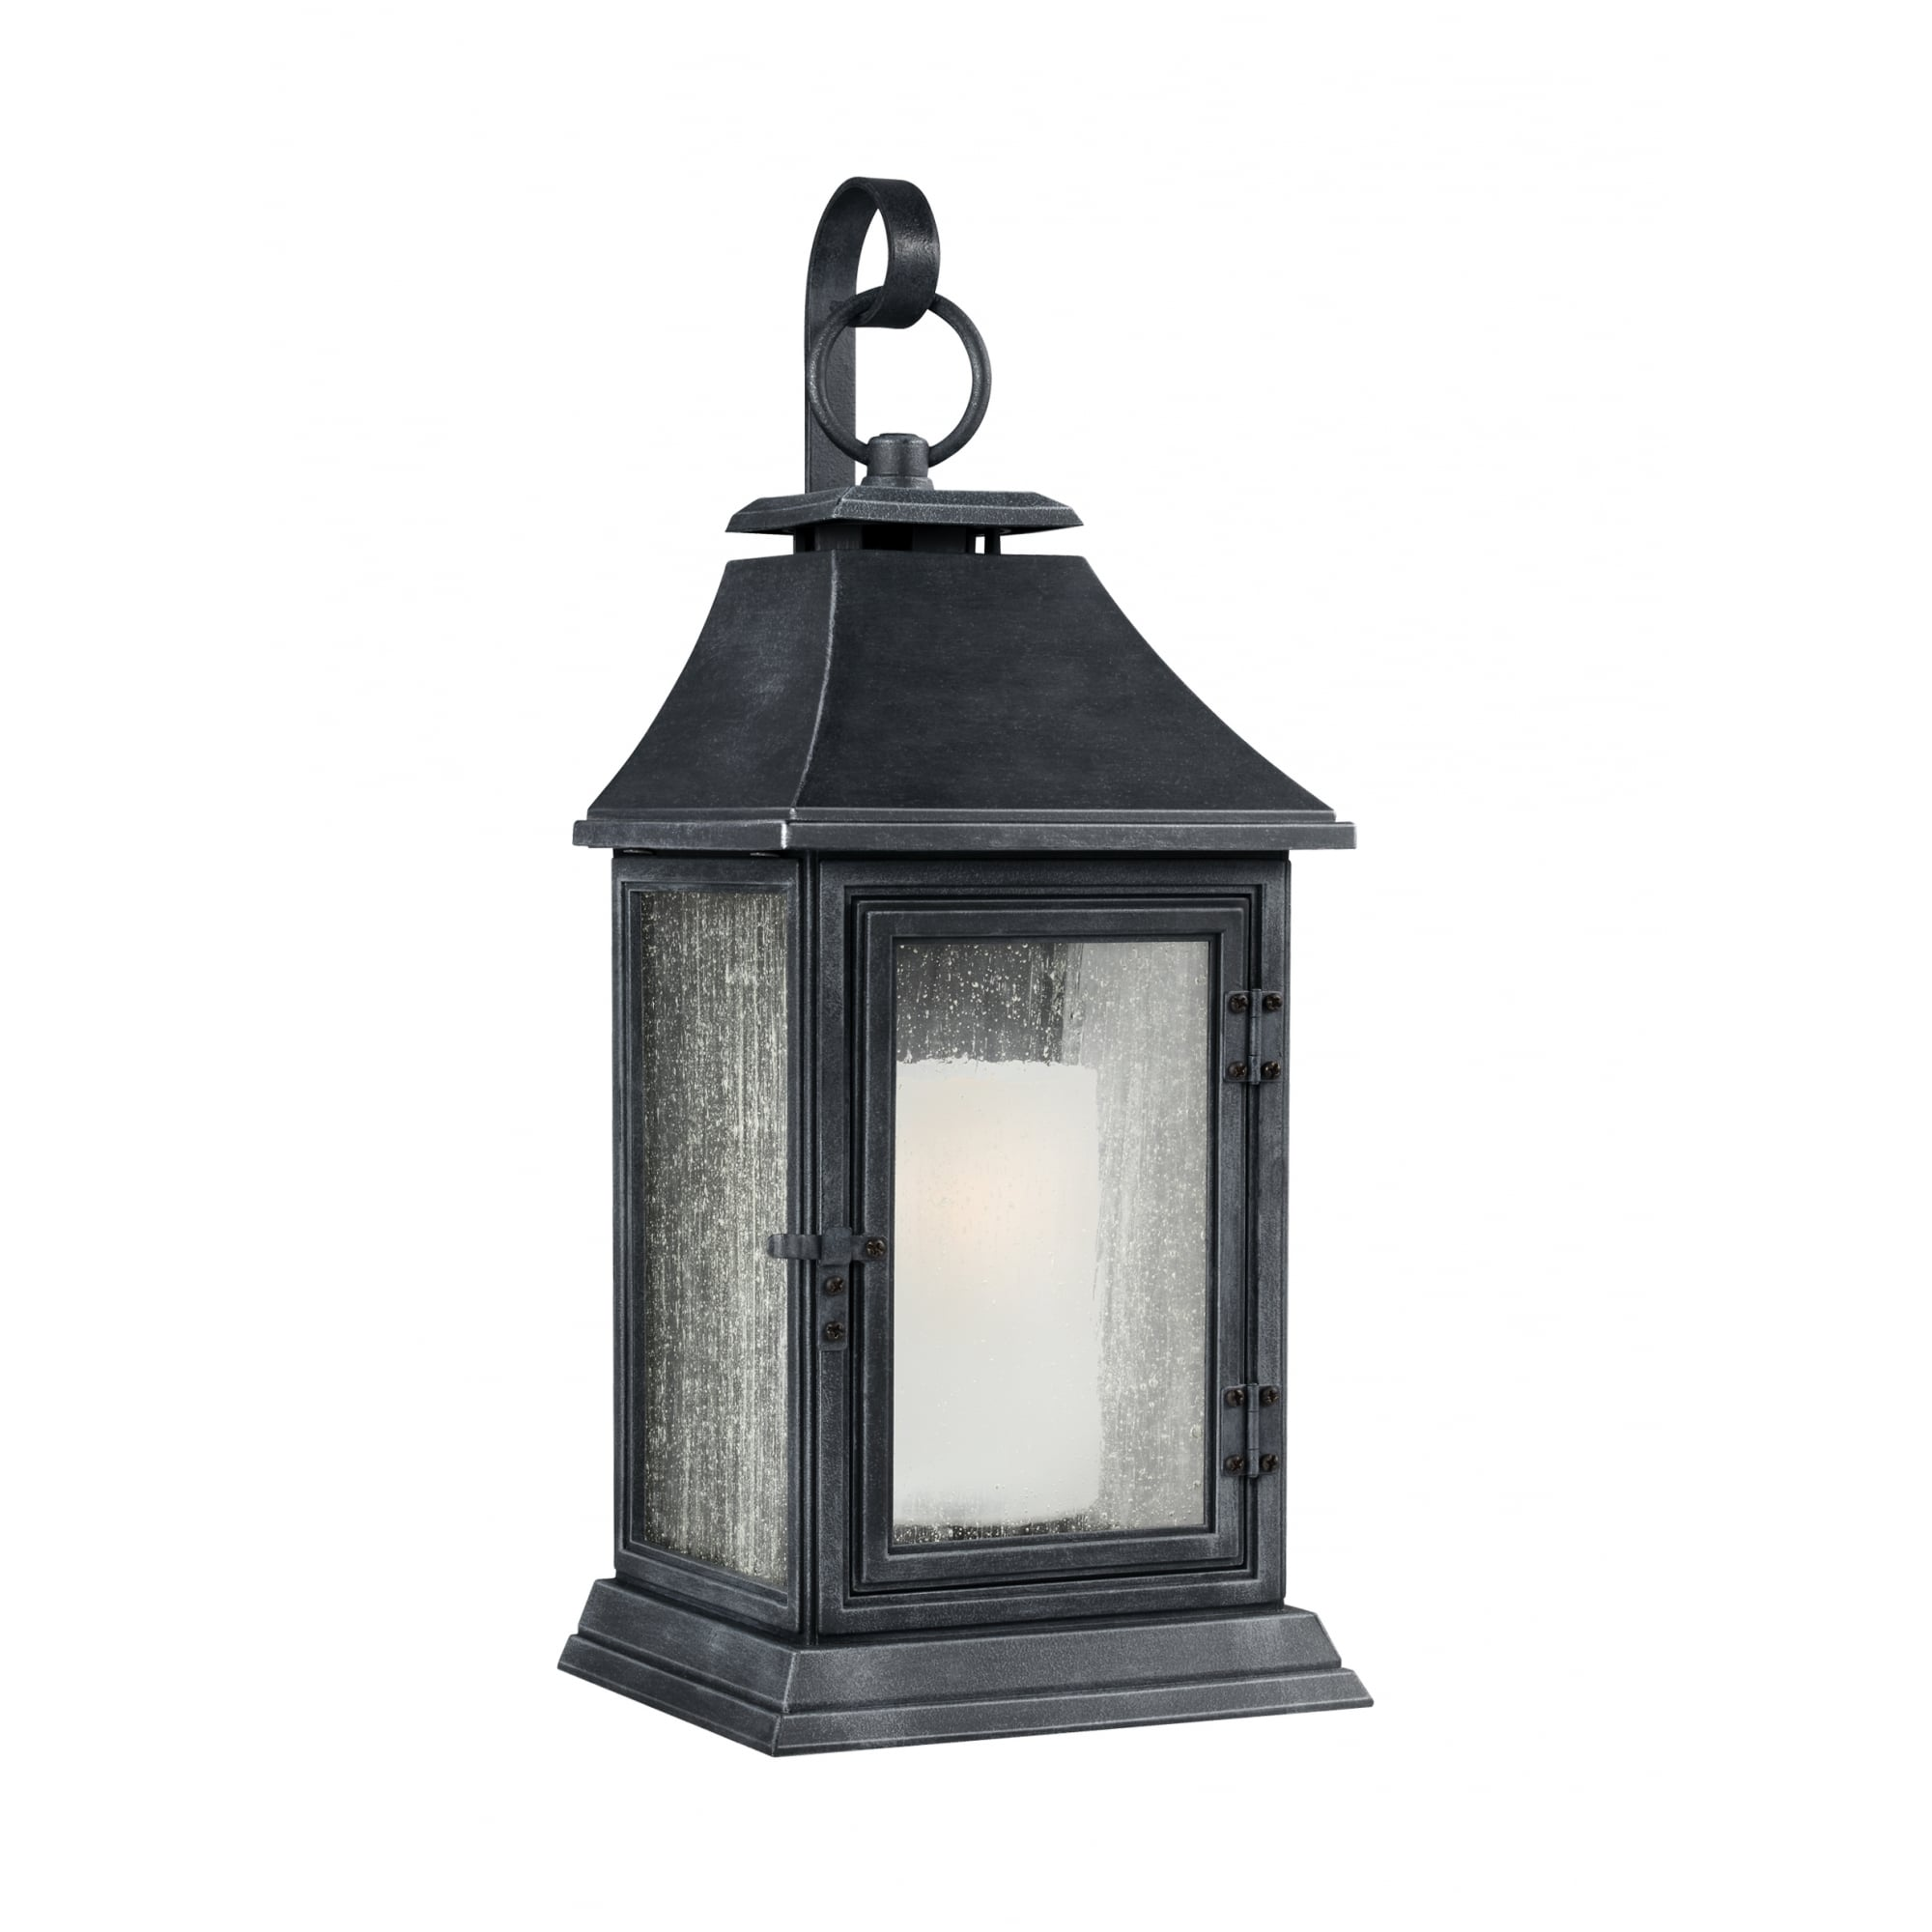 Traditional Large Exterior Wall Lantern In Weathered Zinc Finish